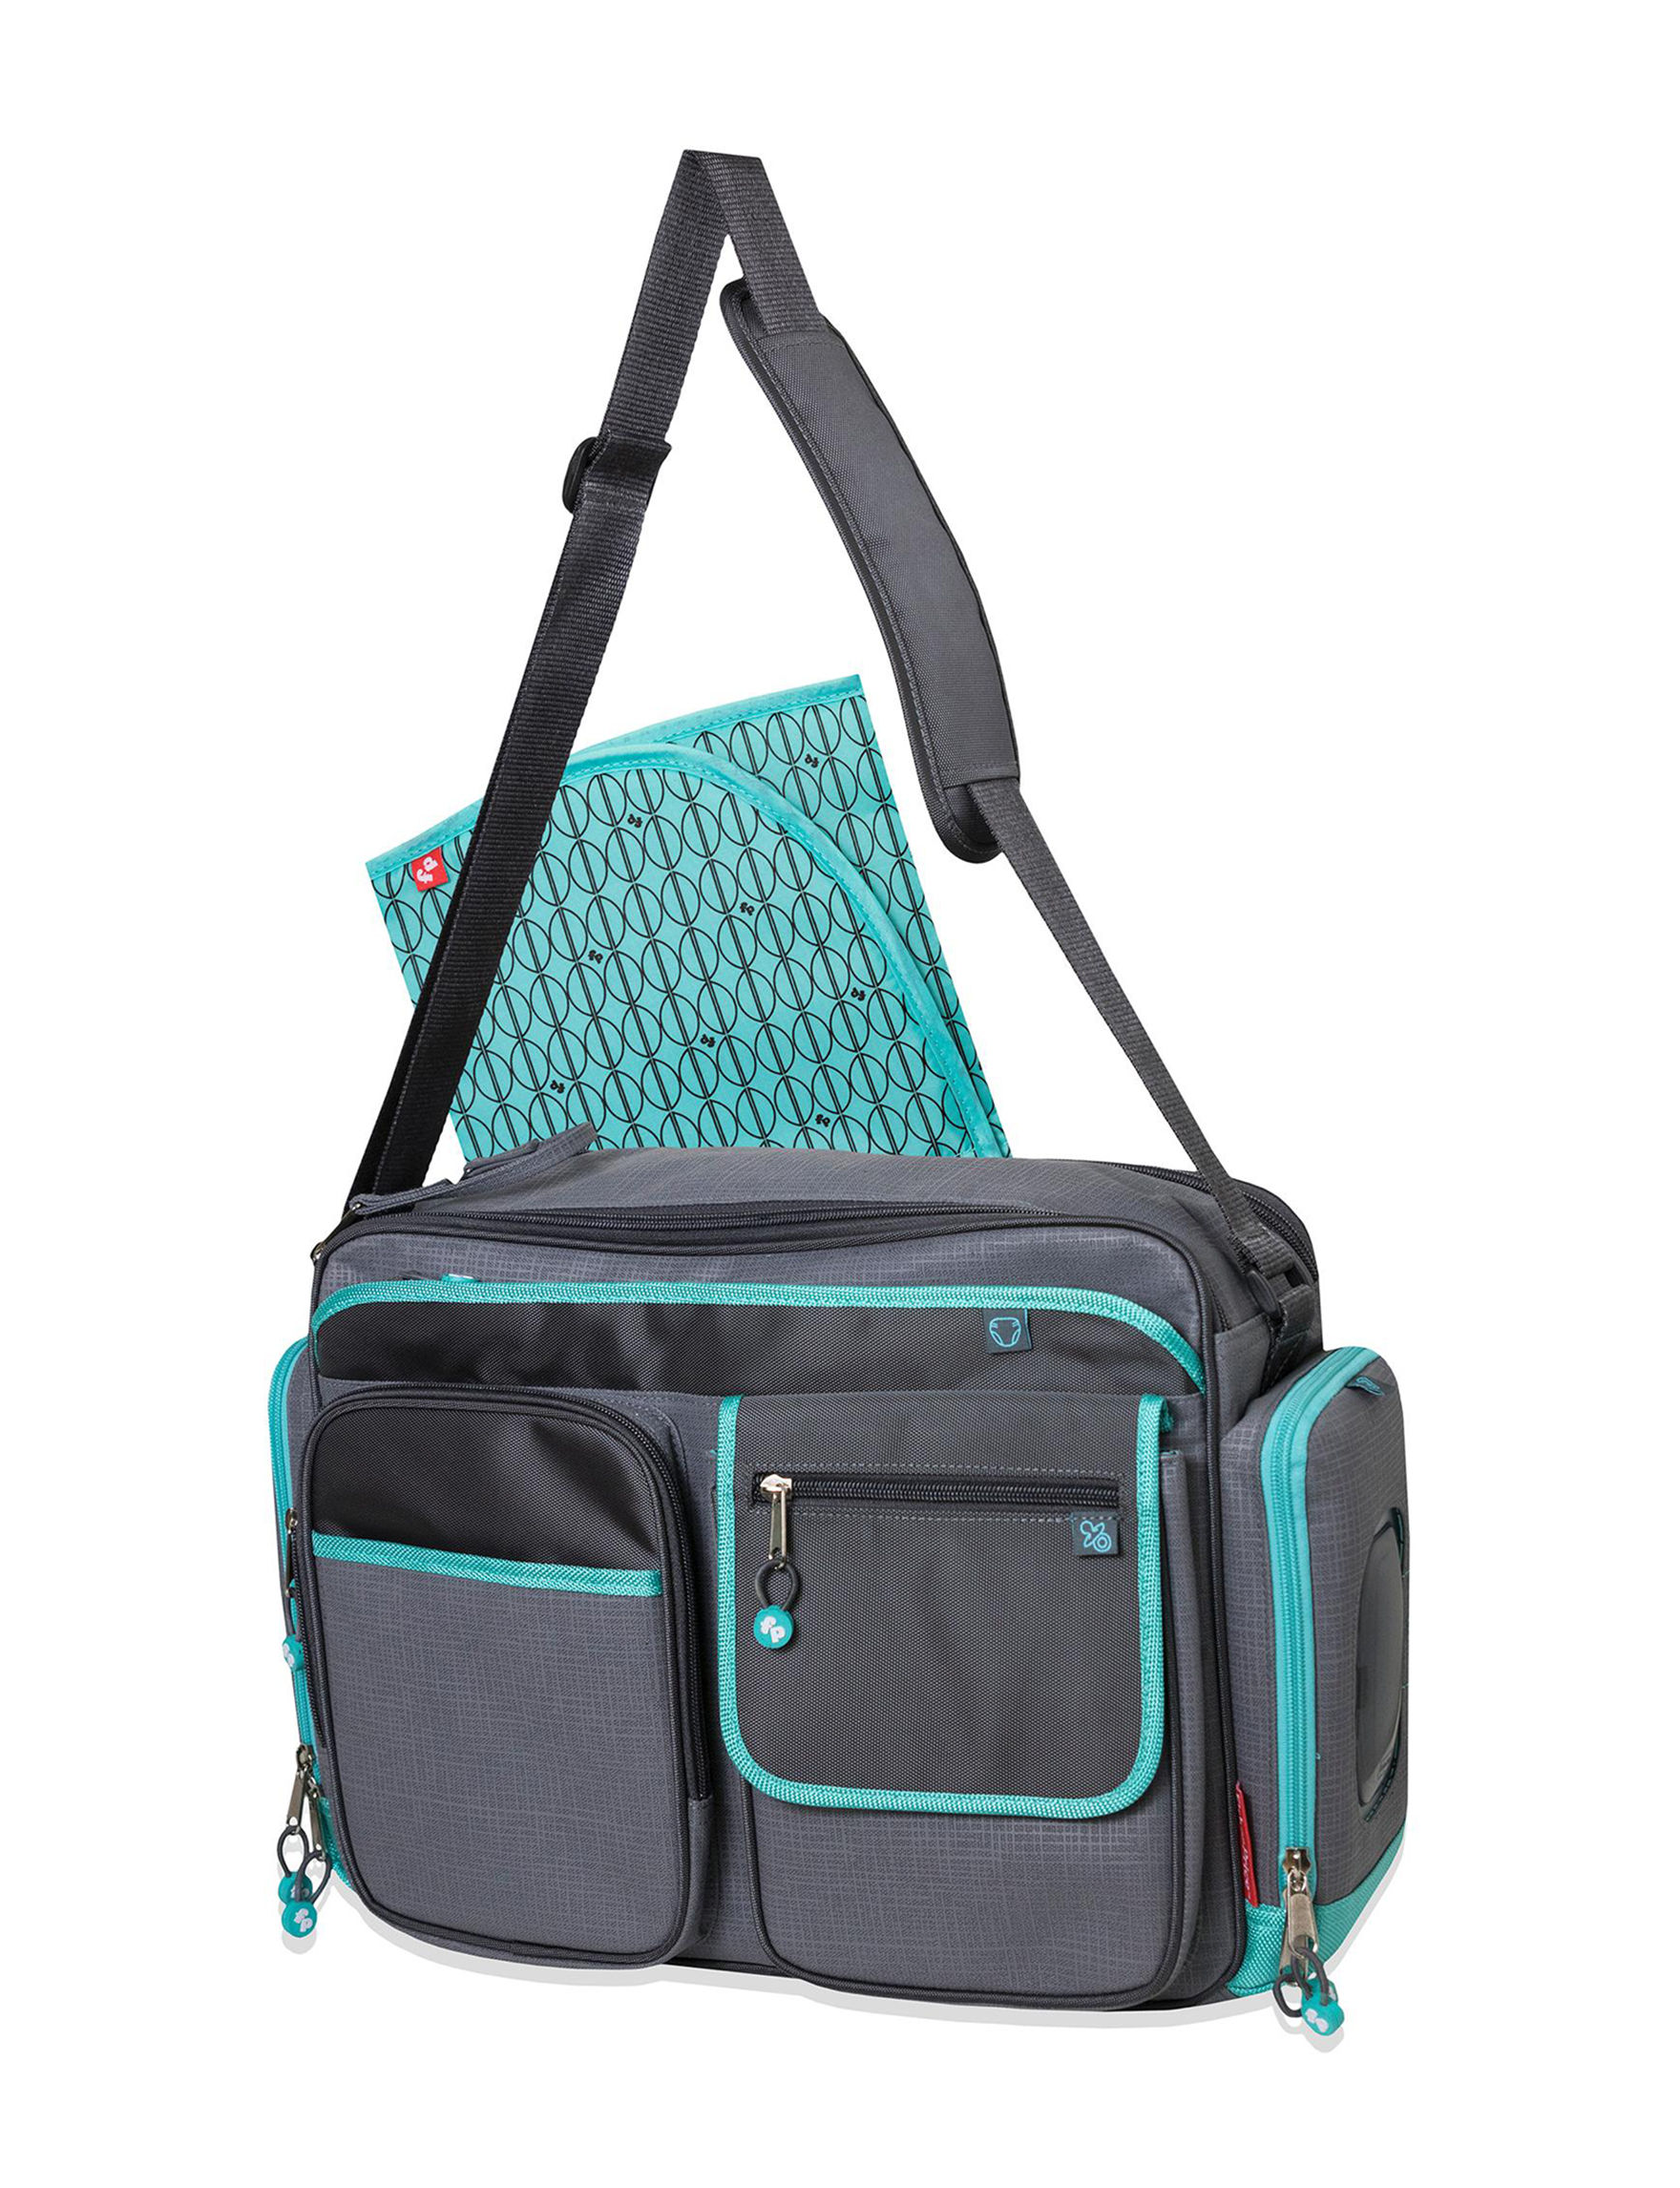 Fisher-Price Teal Diaper Bags